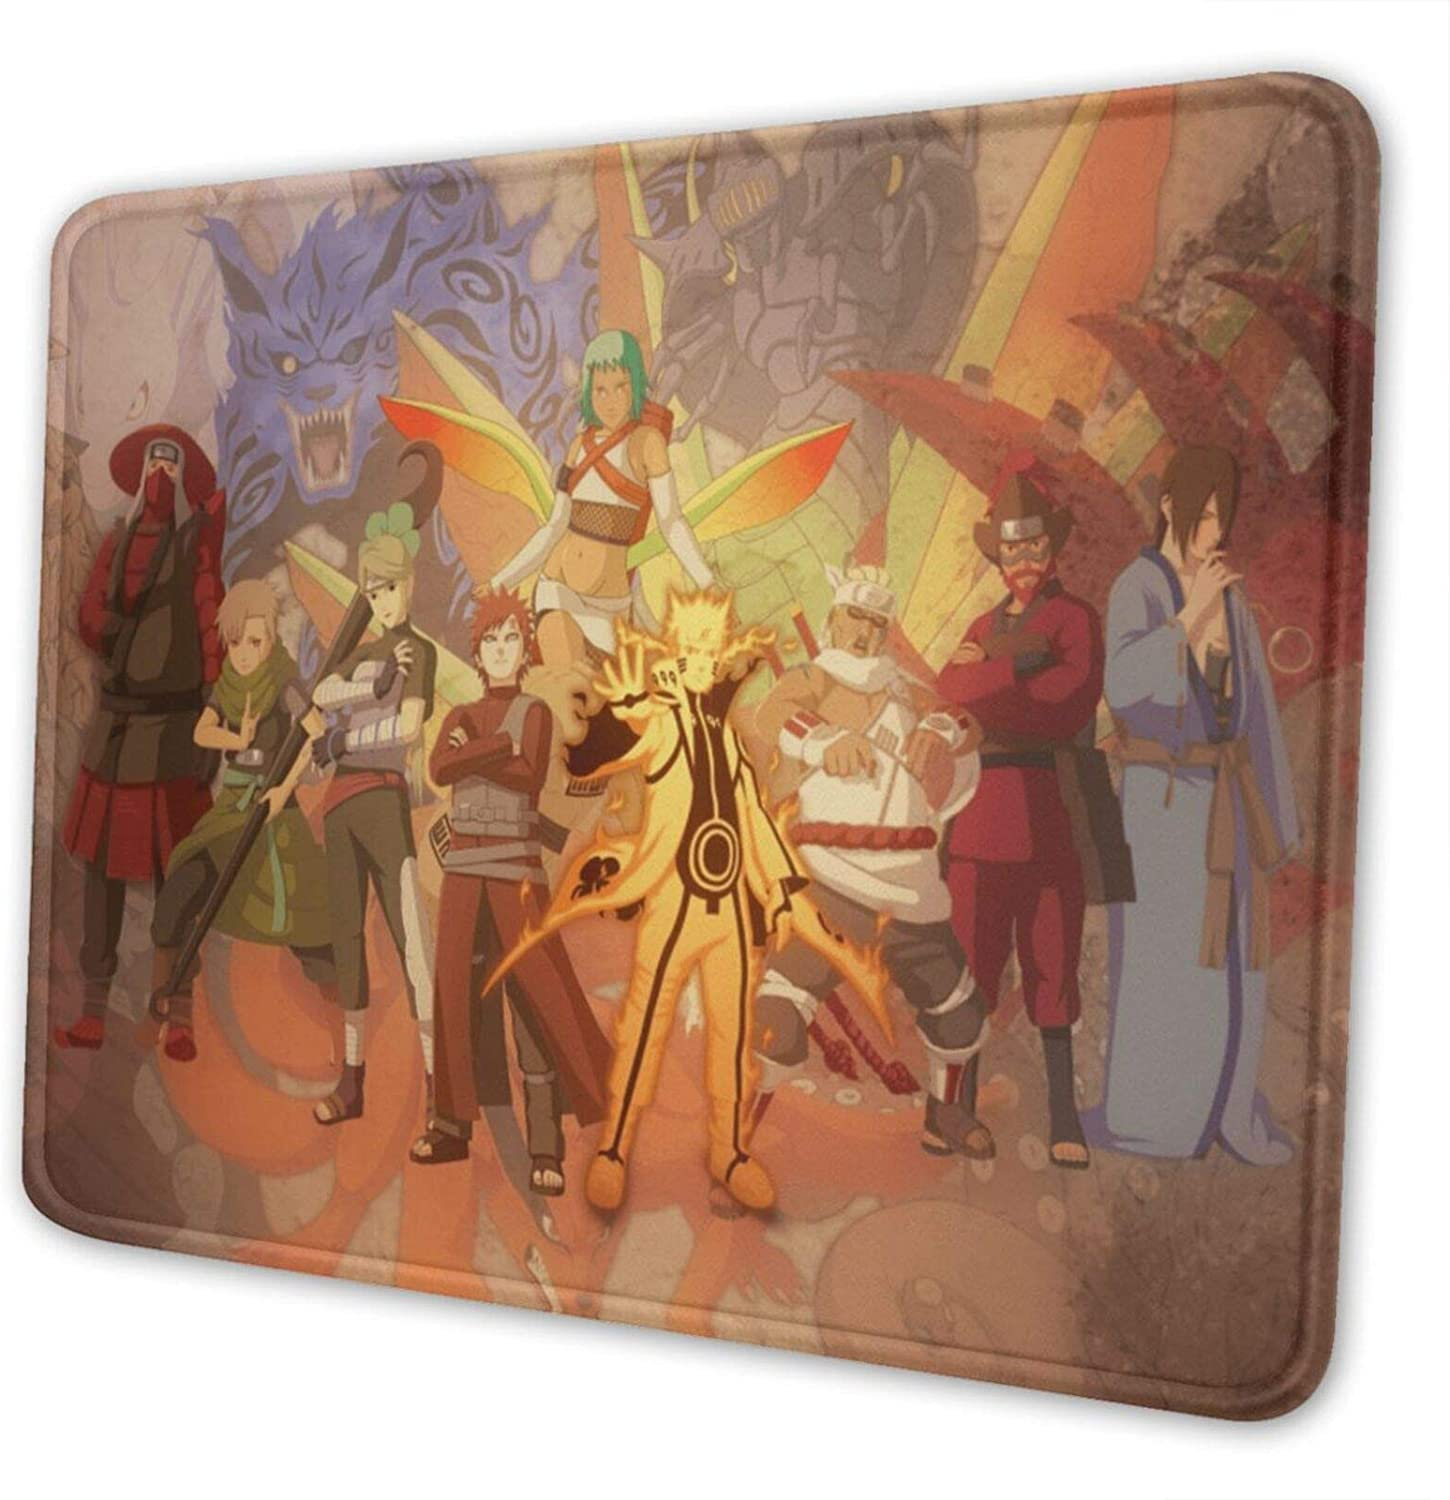 Naruto Non-Slip Mouse Pad Rectangle Rubber Anime Mouse Pad Gaming Mouse Pad 8.3 X 10.3 in